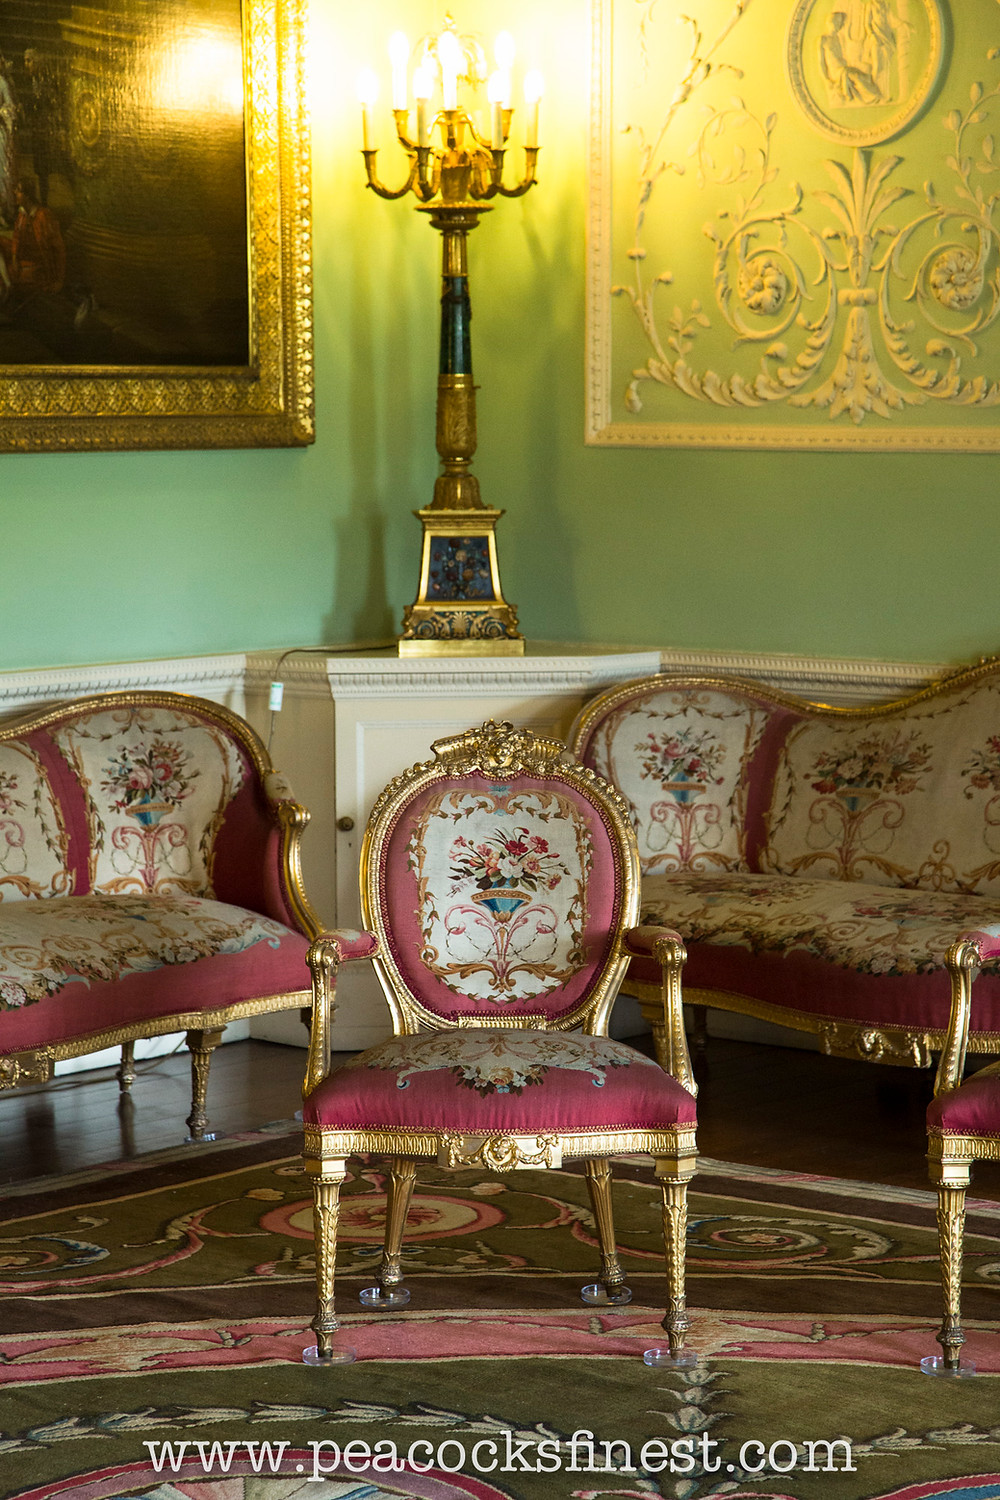 Harewood House, The Music Room. One of a set of eighteen George III giltwood open armchairs by Thomas Chippendale